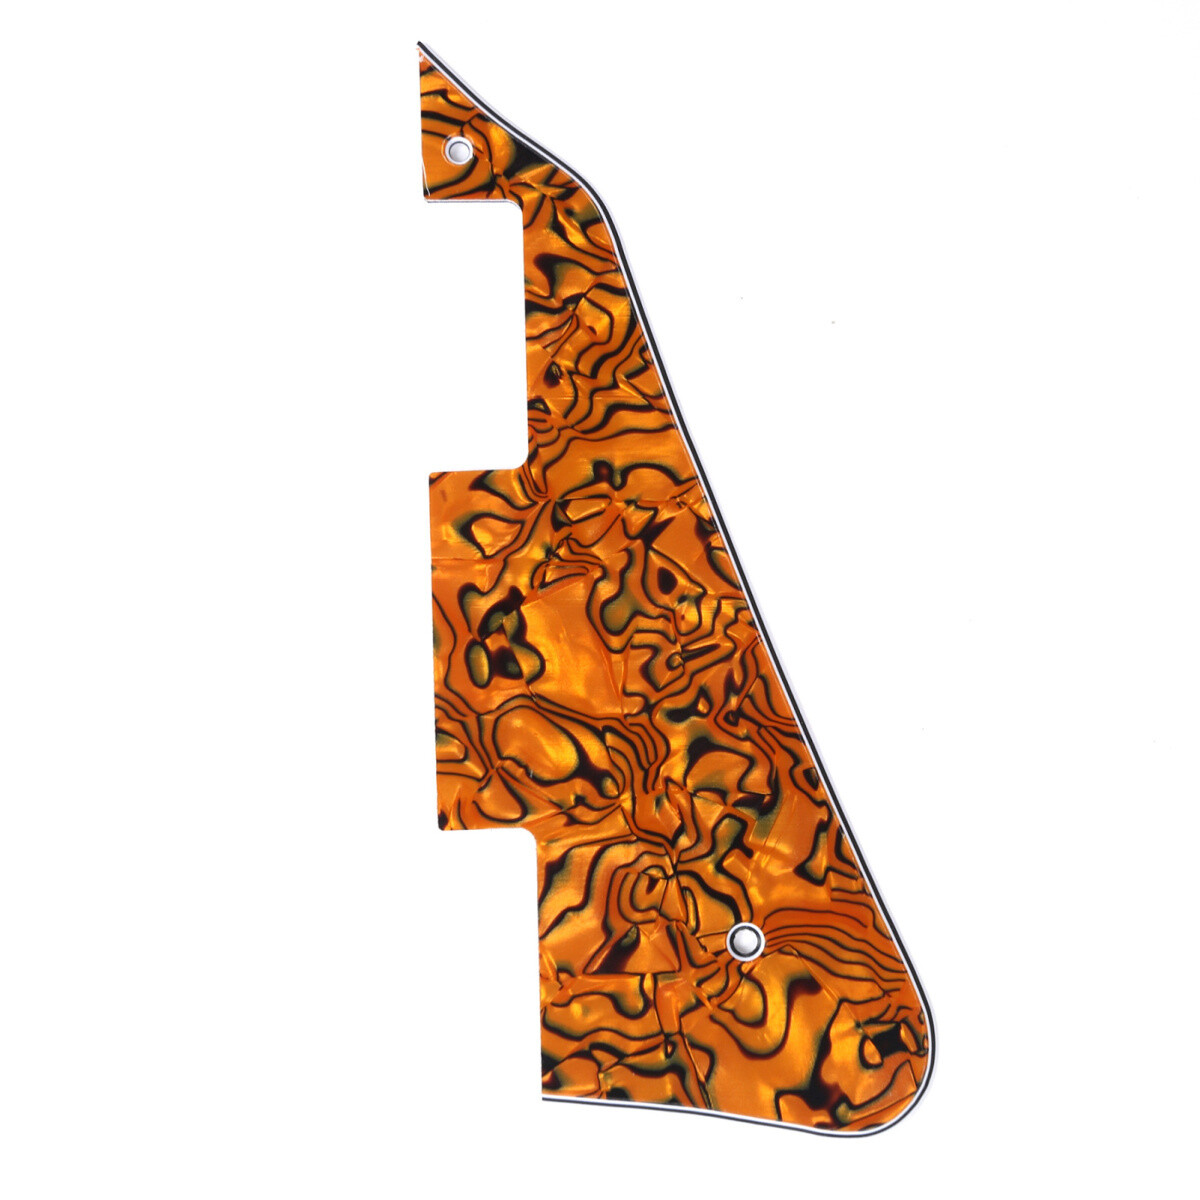 Brio - Gibson® Les Paul® Pickguard Modern Style 4 Ply Tiger Shell